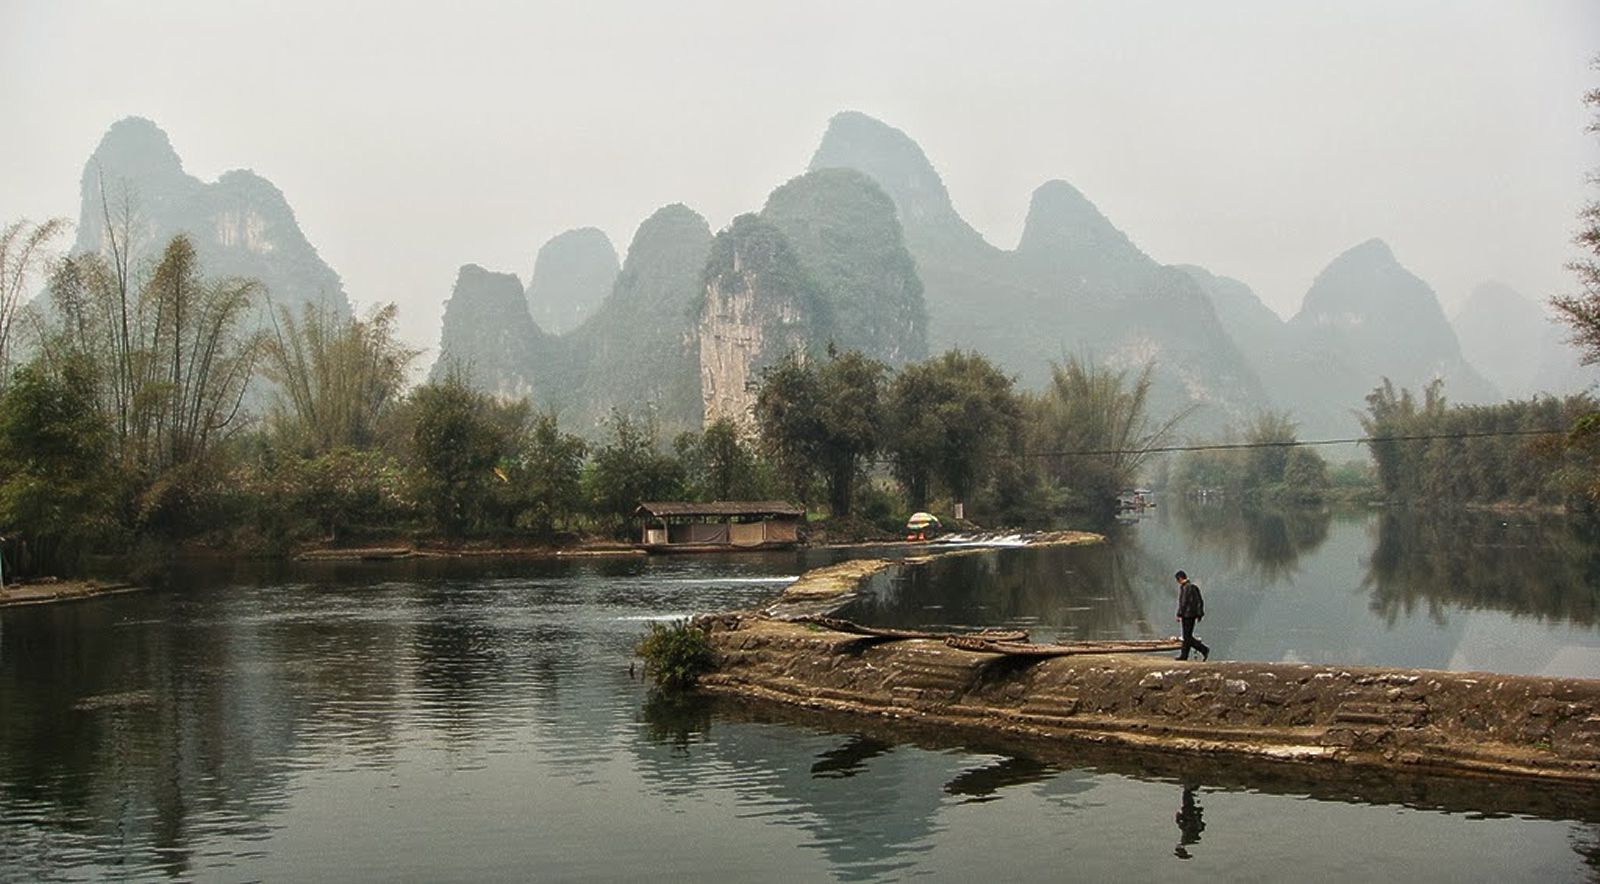 VOYAGE EN CHINE BELLE PHOTO-1600-optim80